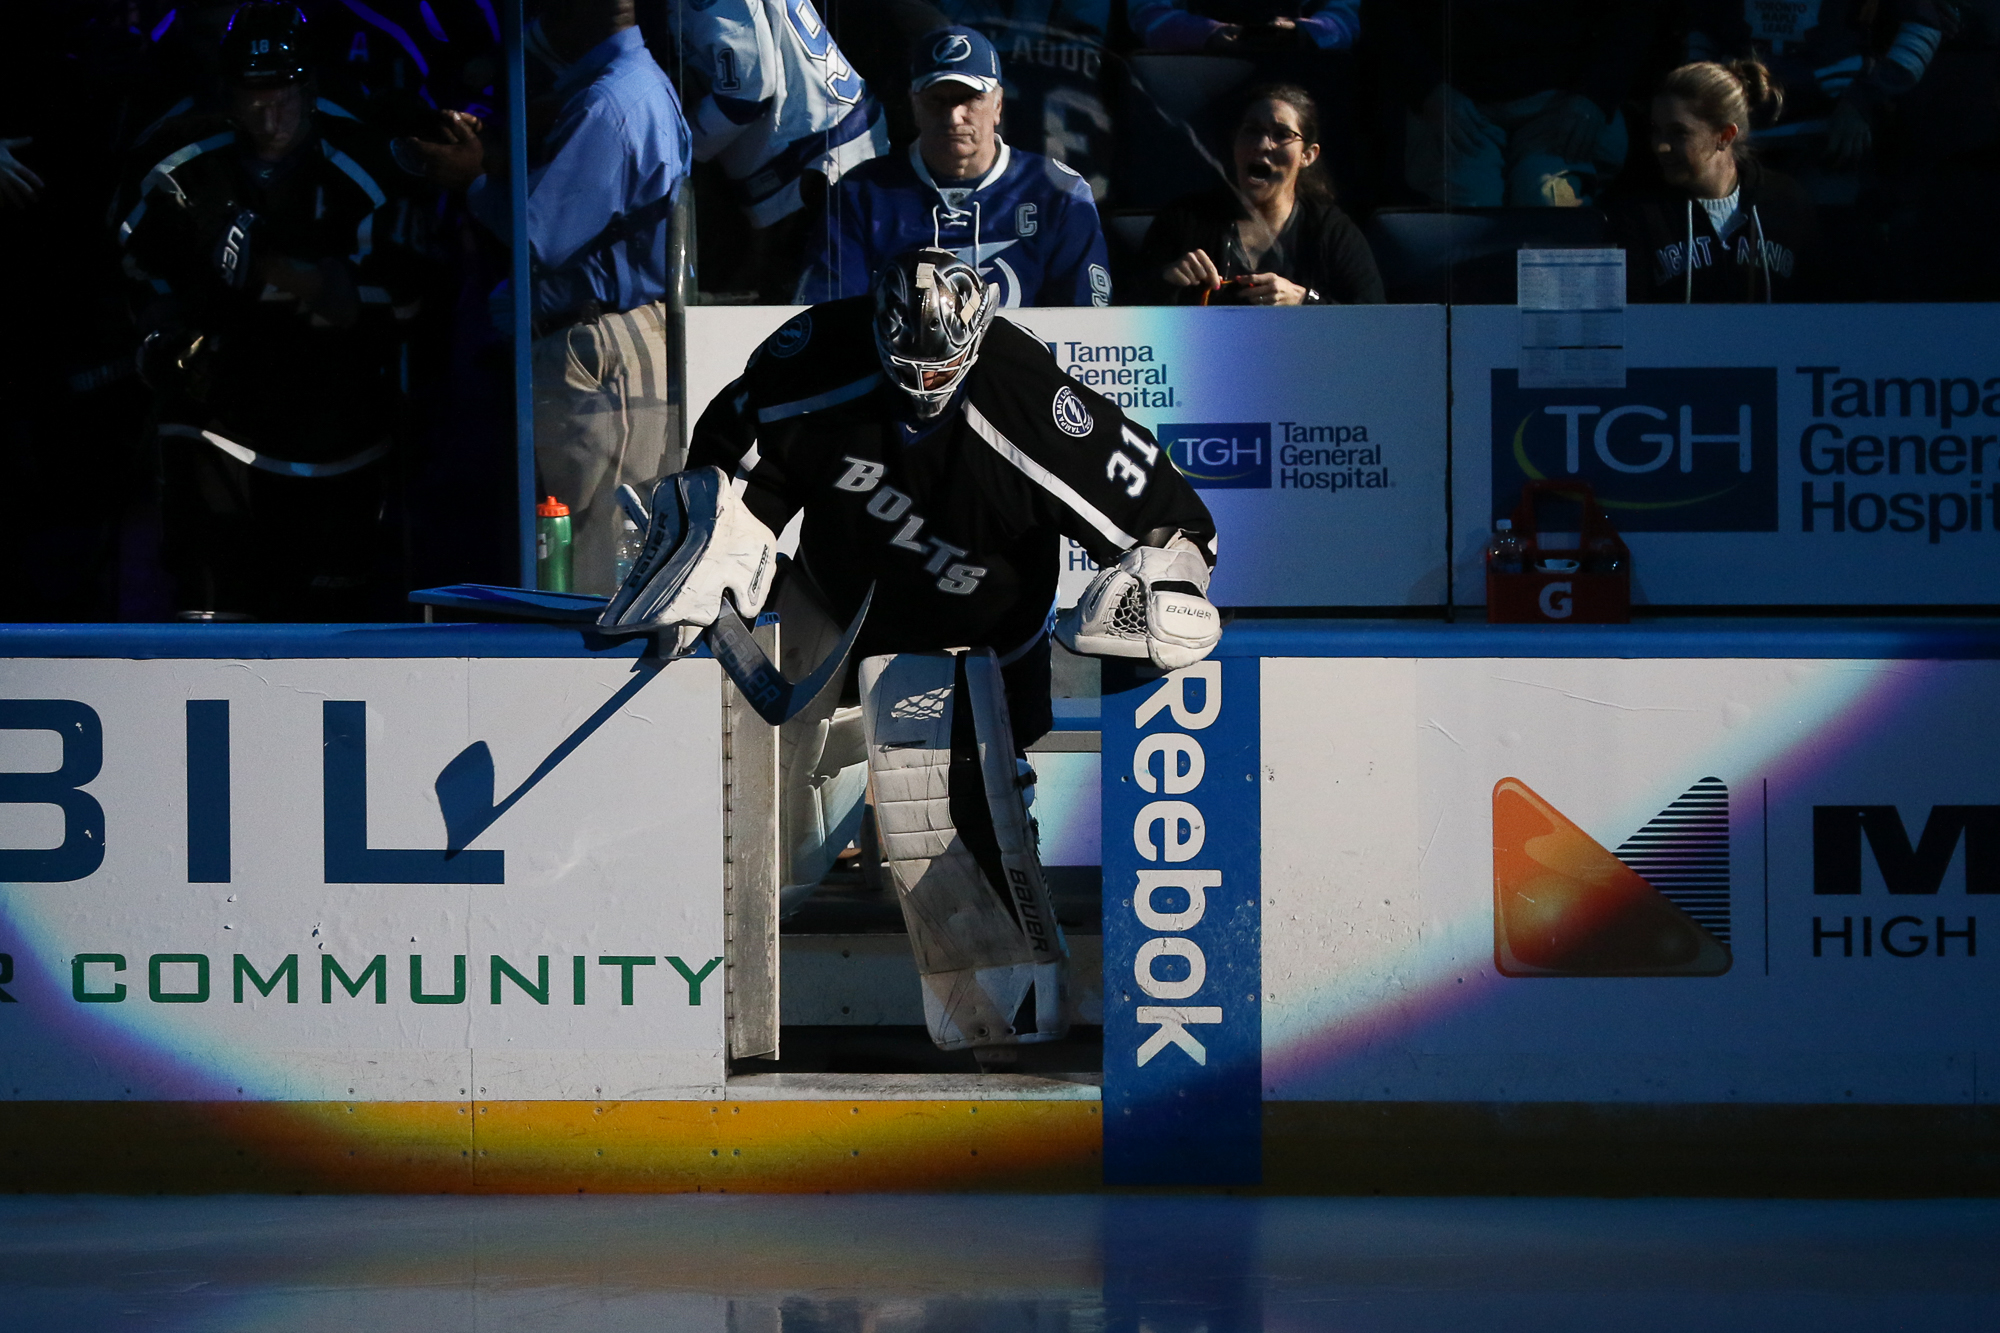 Peter Budaj came in in the second period in relief./Steven Muncie